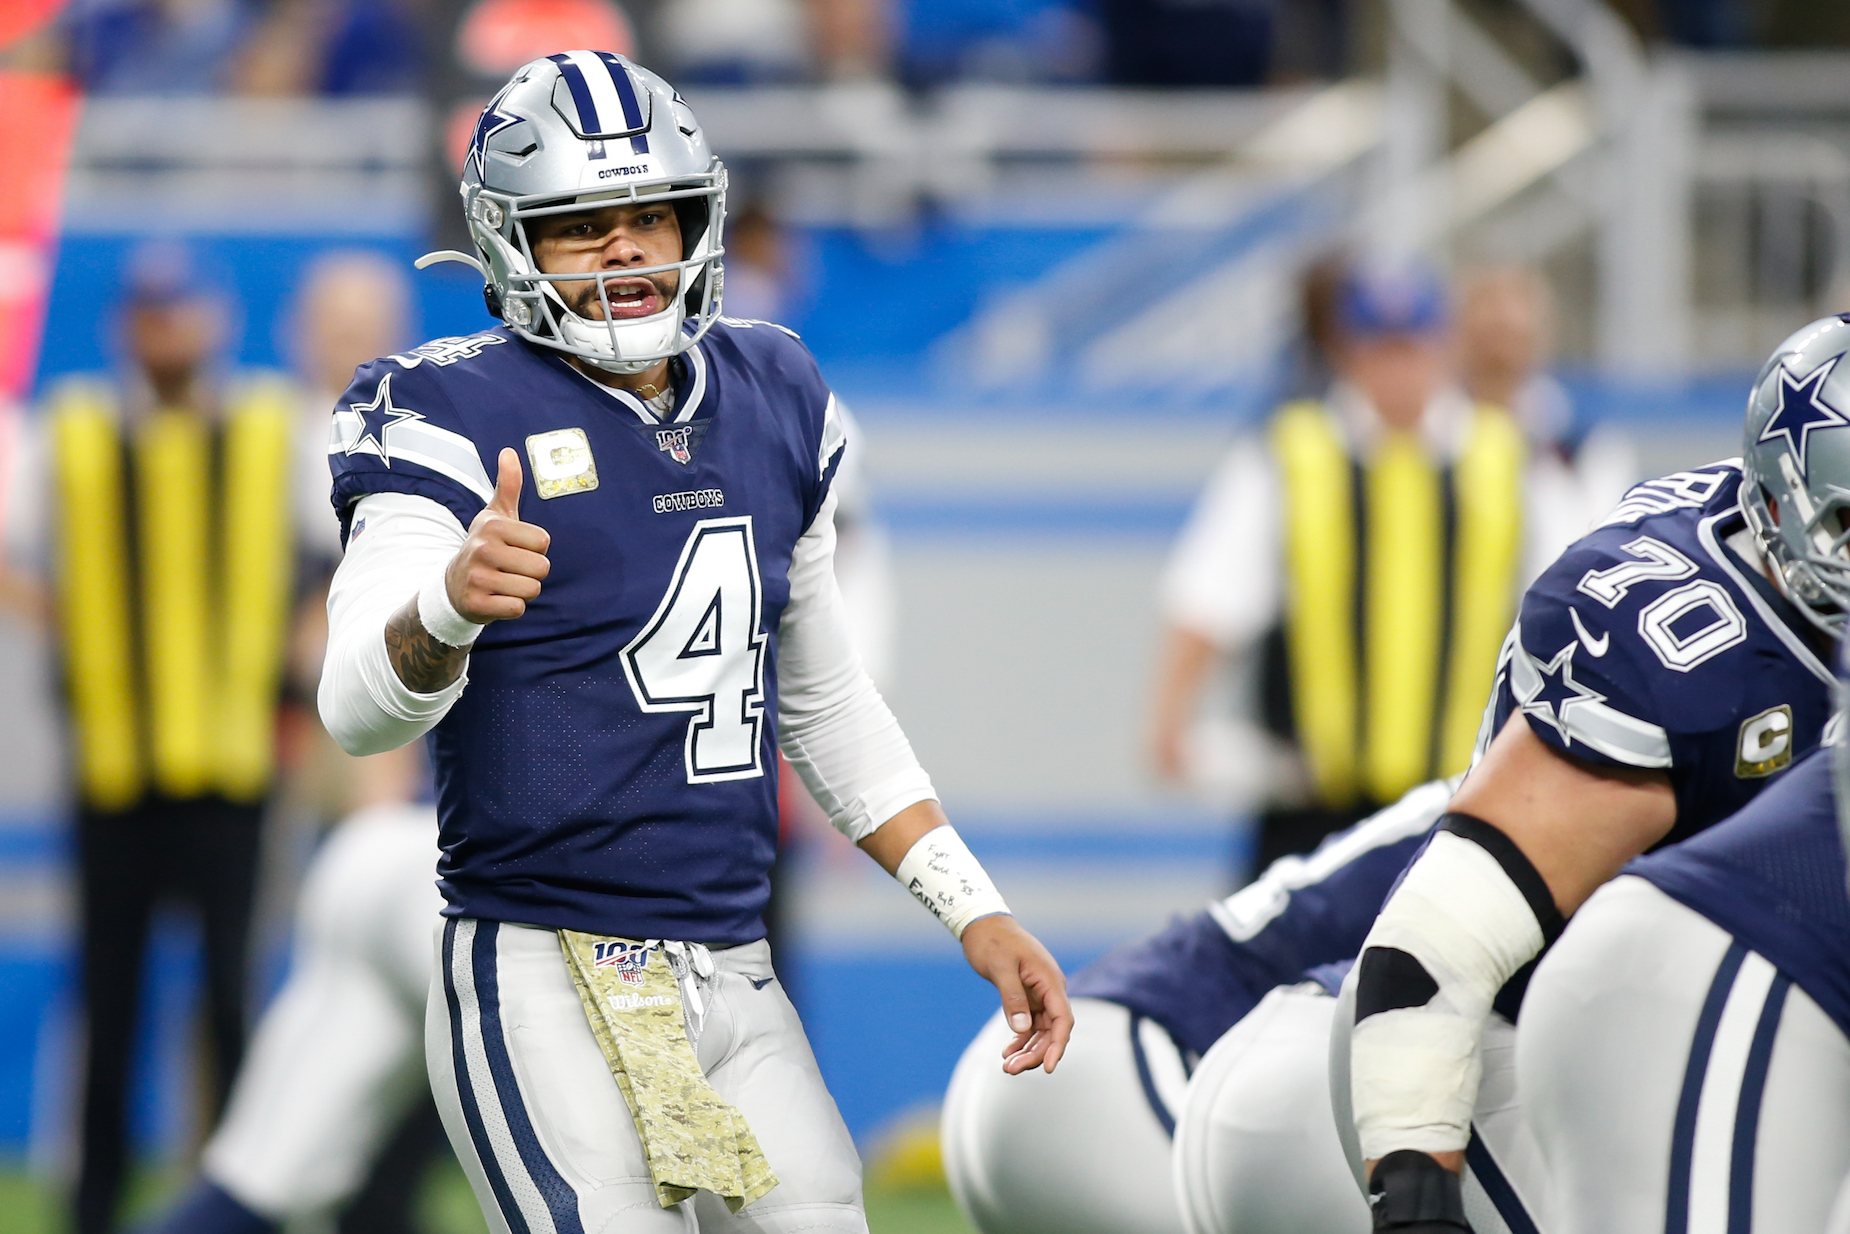 Dak Prescott just told Dallas Cowboys fans exactly what they're hoping to hear ahead of the 2020 NFL season.